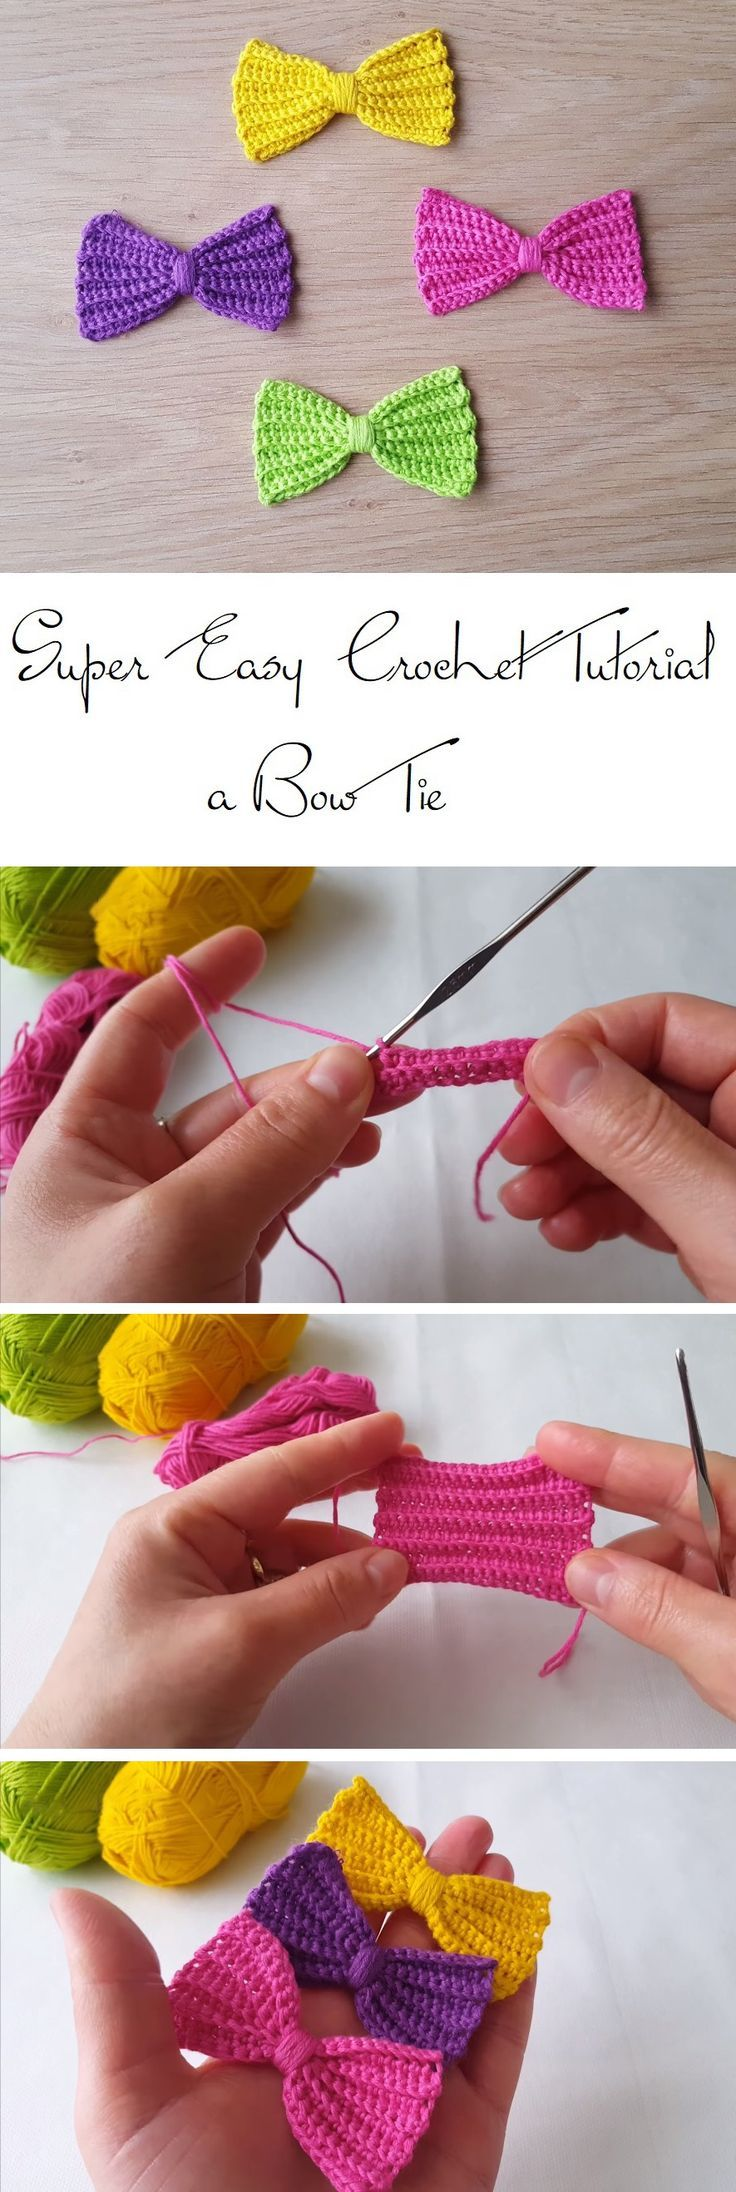 How to Crochet a Simple Bow Tie | Crochet, Bow tie tutorial and ...